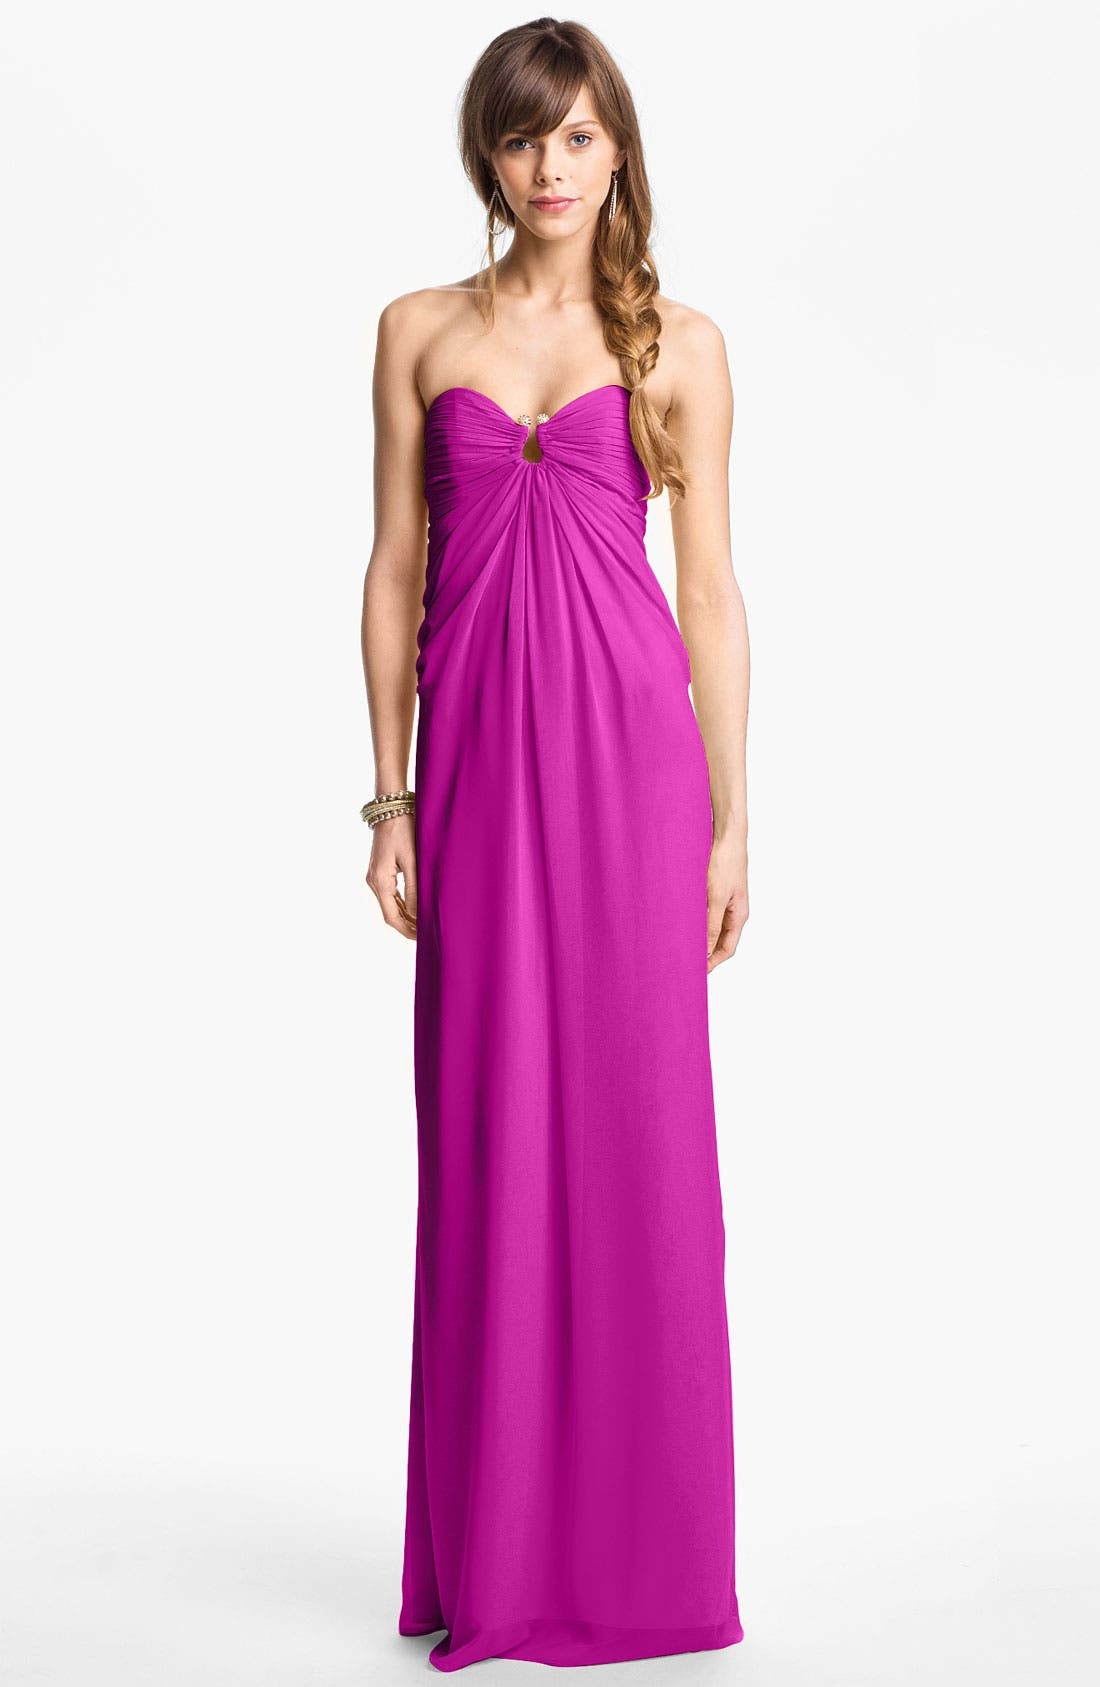 Main Image - Laundry by Shelli Segal Strapless Chiffon Gown